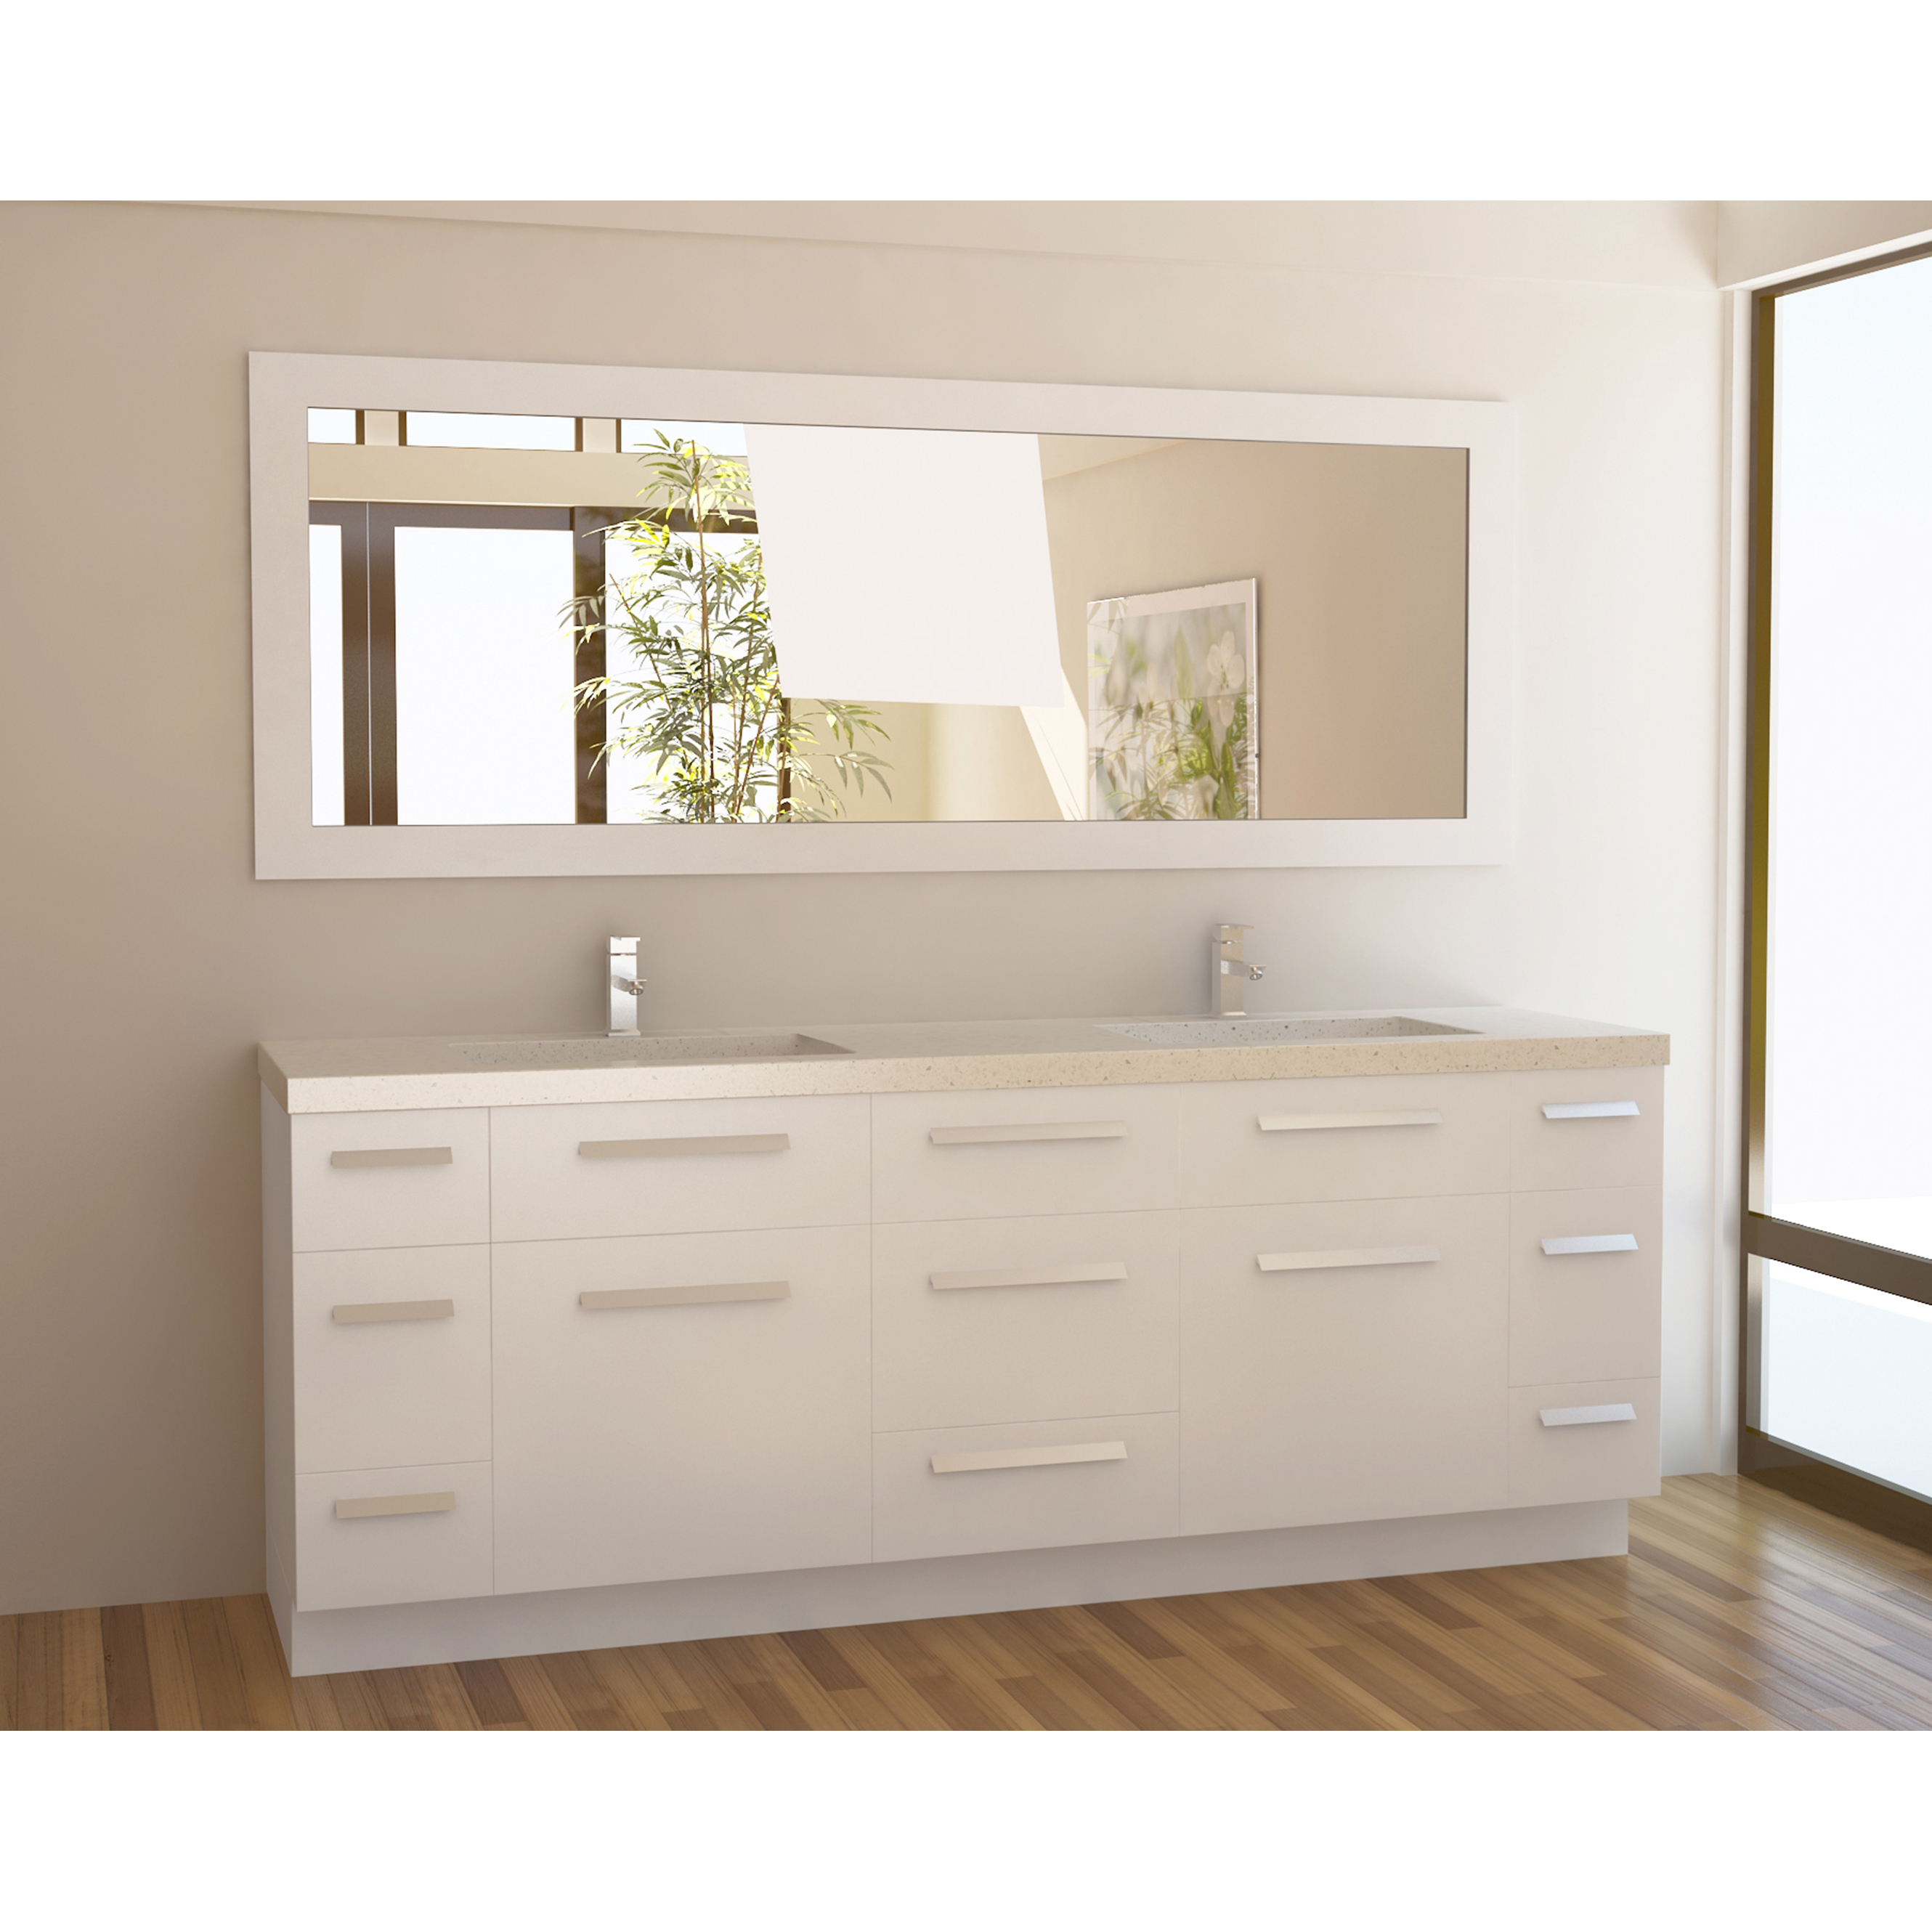 84 inch bathroom vanity the variants homesfeed - Contemporary double sink bathroom vanity ...